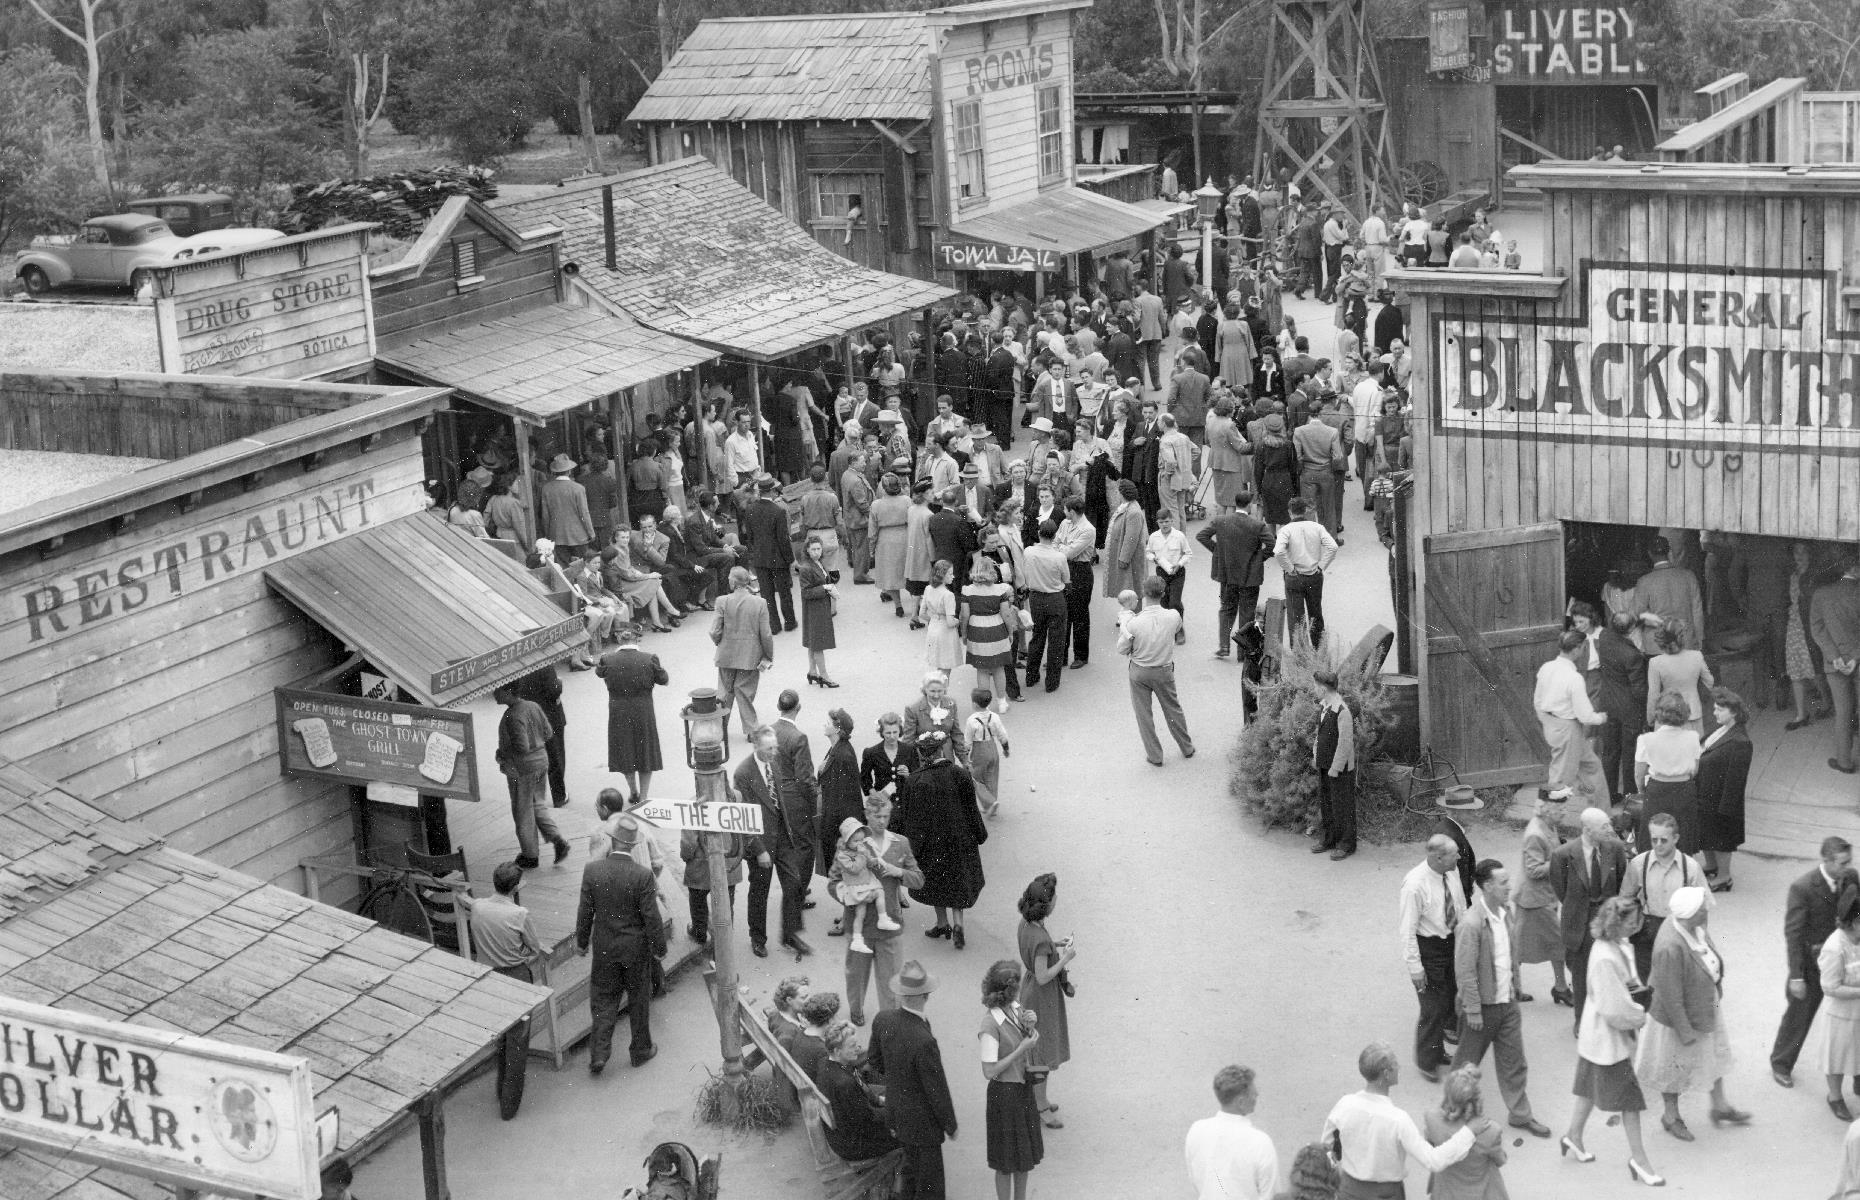 Slide 32 of 47: Further visitors flooded in when Cordelia Knott began selling her delicious fried chicken dinner in the 1930s, and by the 1940s the pair decided to add yet more attractions. The Ghost Town, an Old West-themed area packed with wooden buildings from a blacksmiths' shop to saloons, opened in this decade. It's pictured here crammed with visitors in its early days.